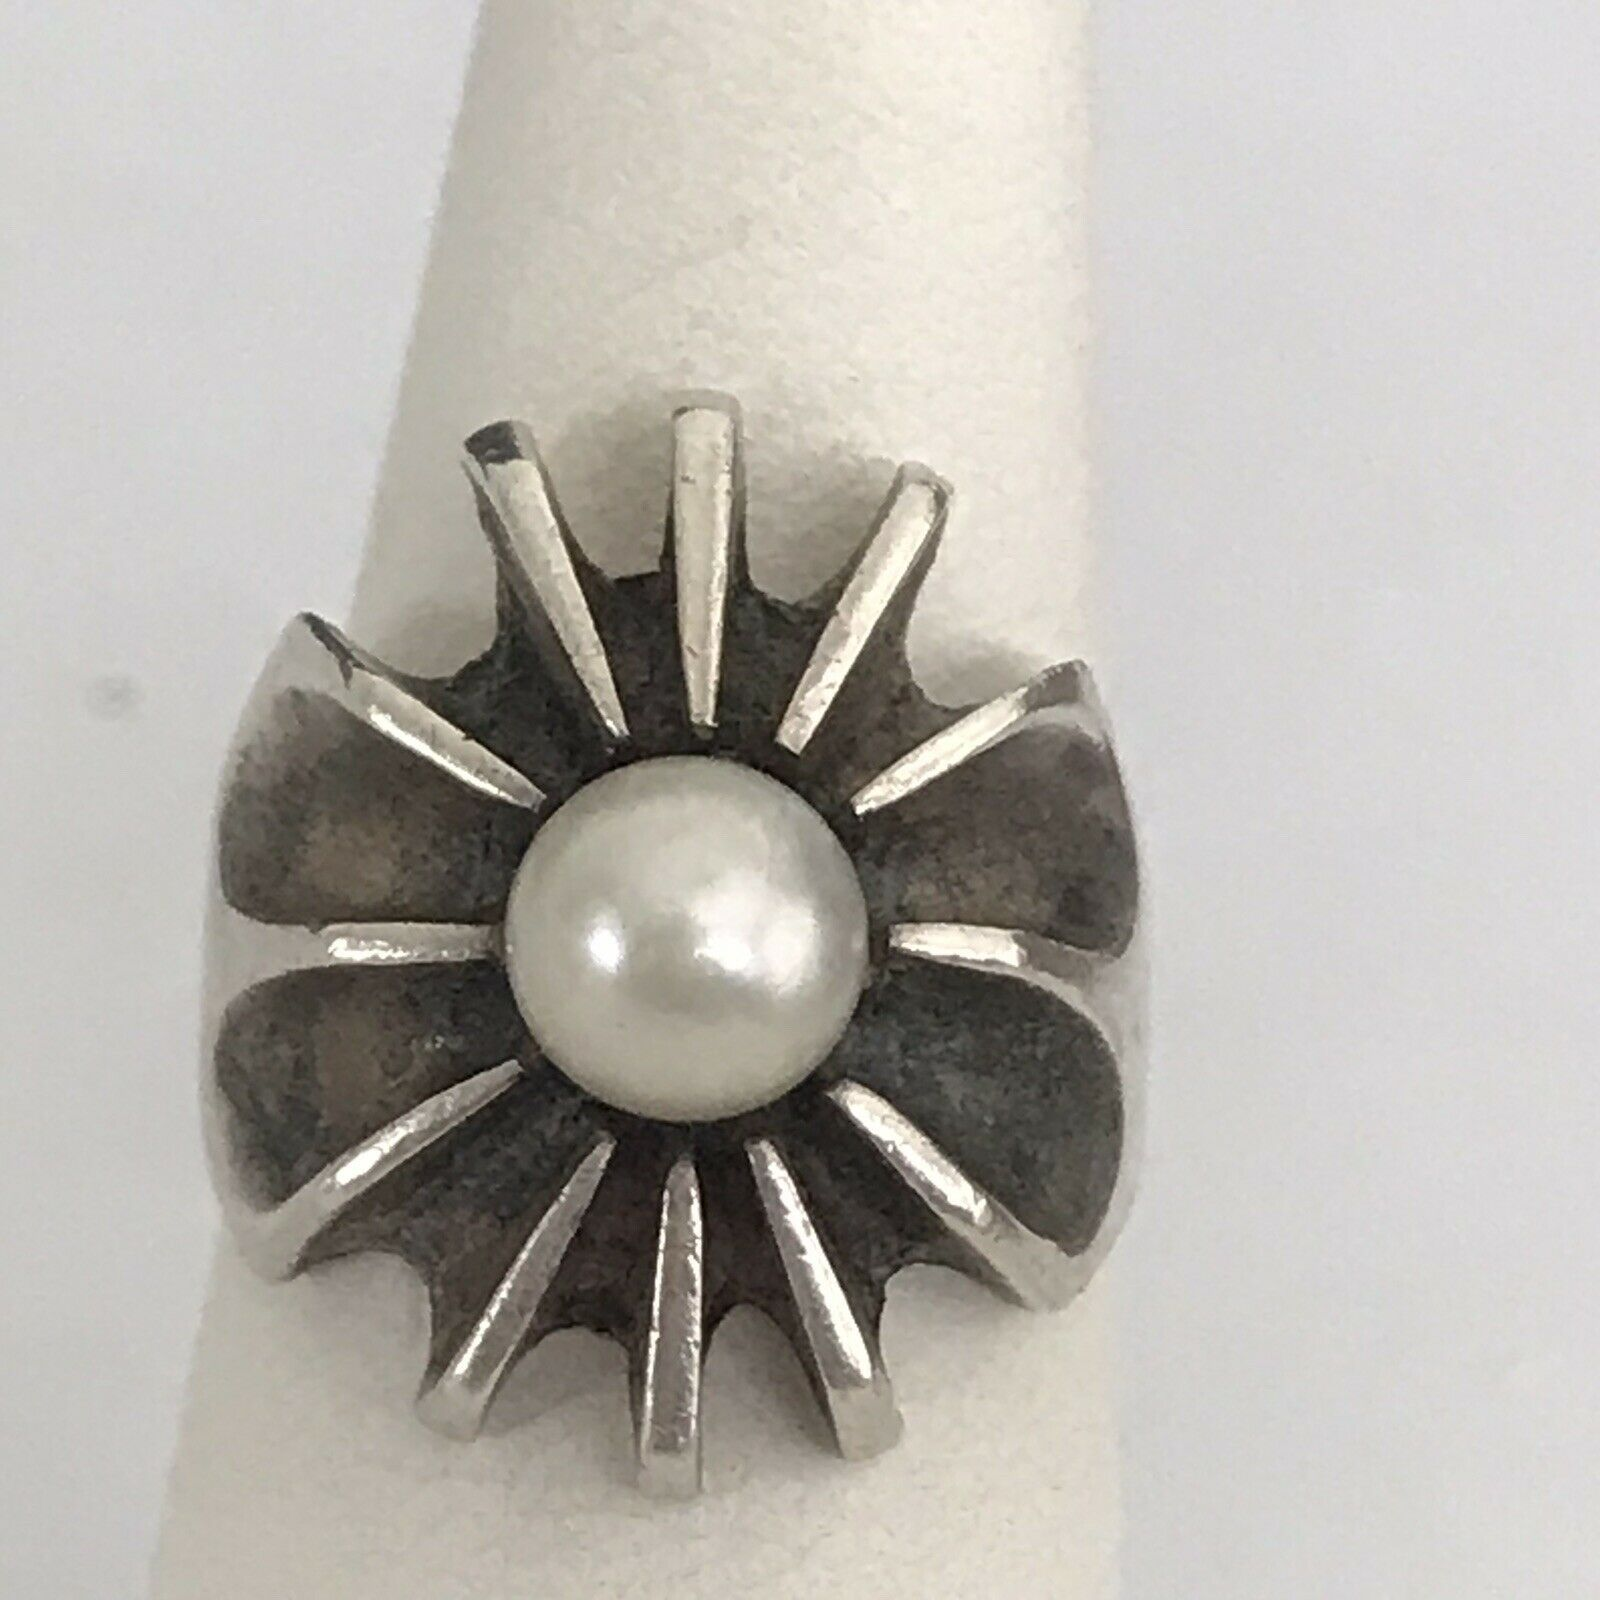 West Coast Jewelry Sterling Silver with CZ 7-8mm Freshwater Cultured Button Pearl Pendant